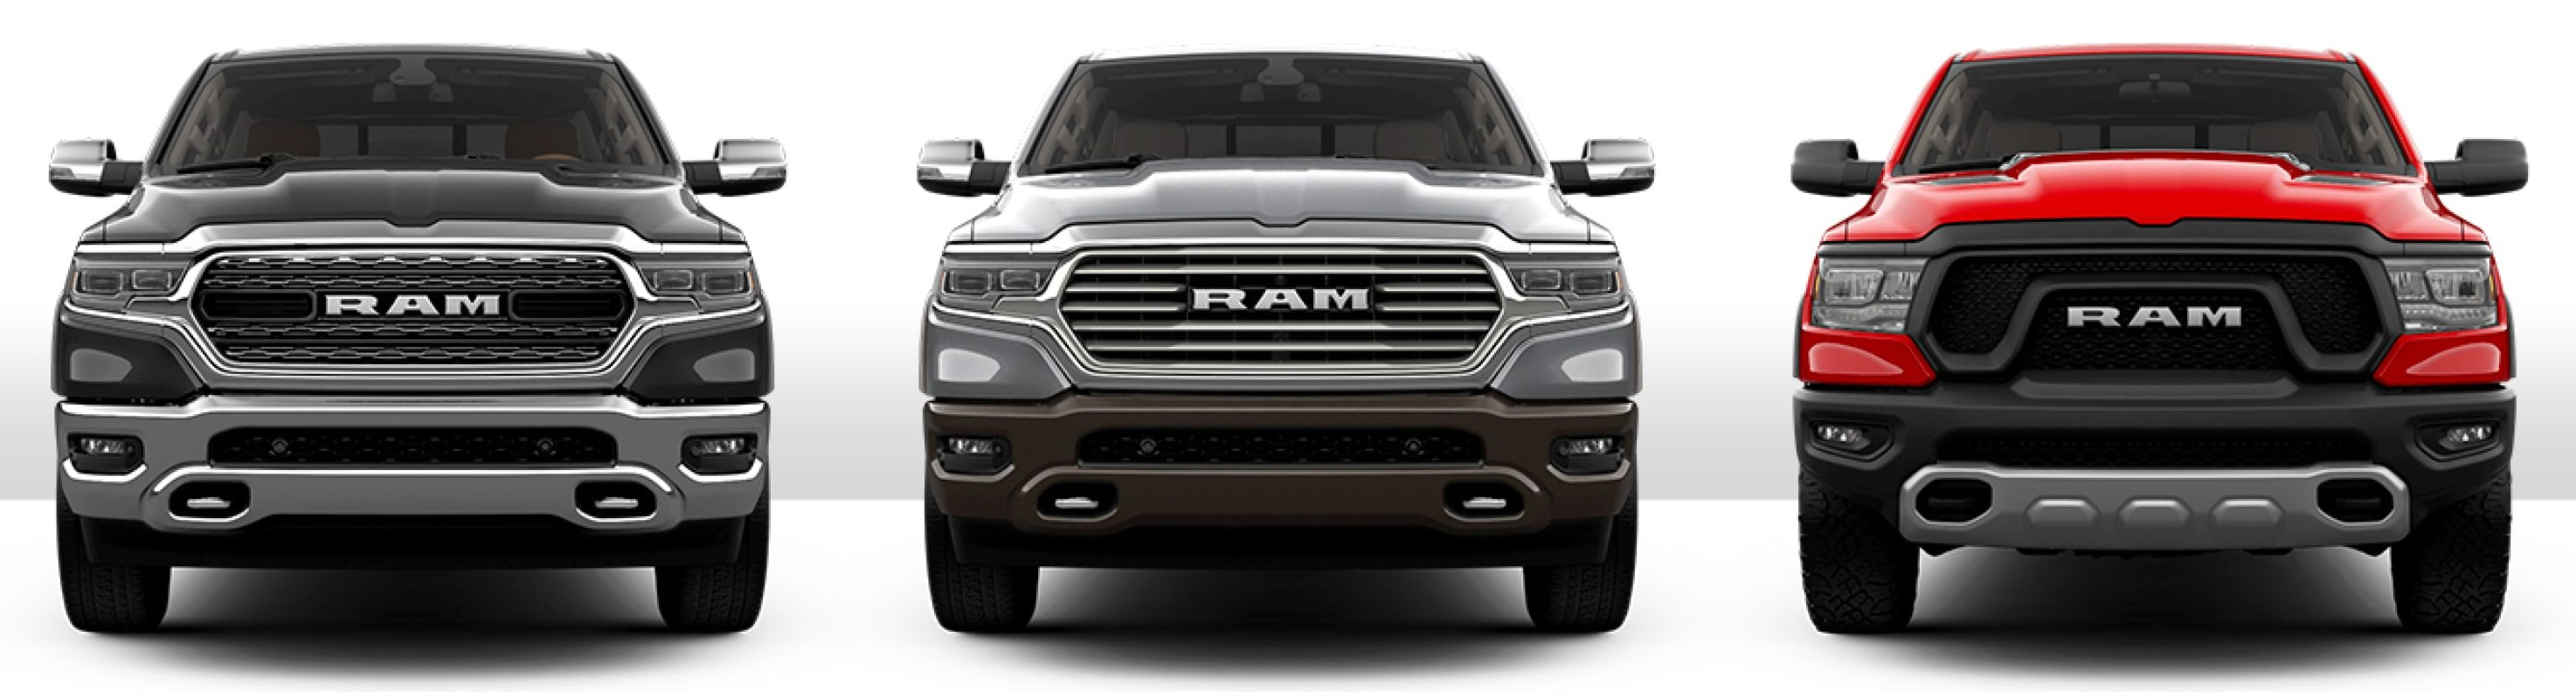 2019 Ram 1500 For Sale Near Me Long Island Ny 1980 Dodge Truck Brochure